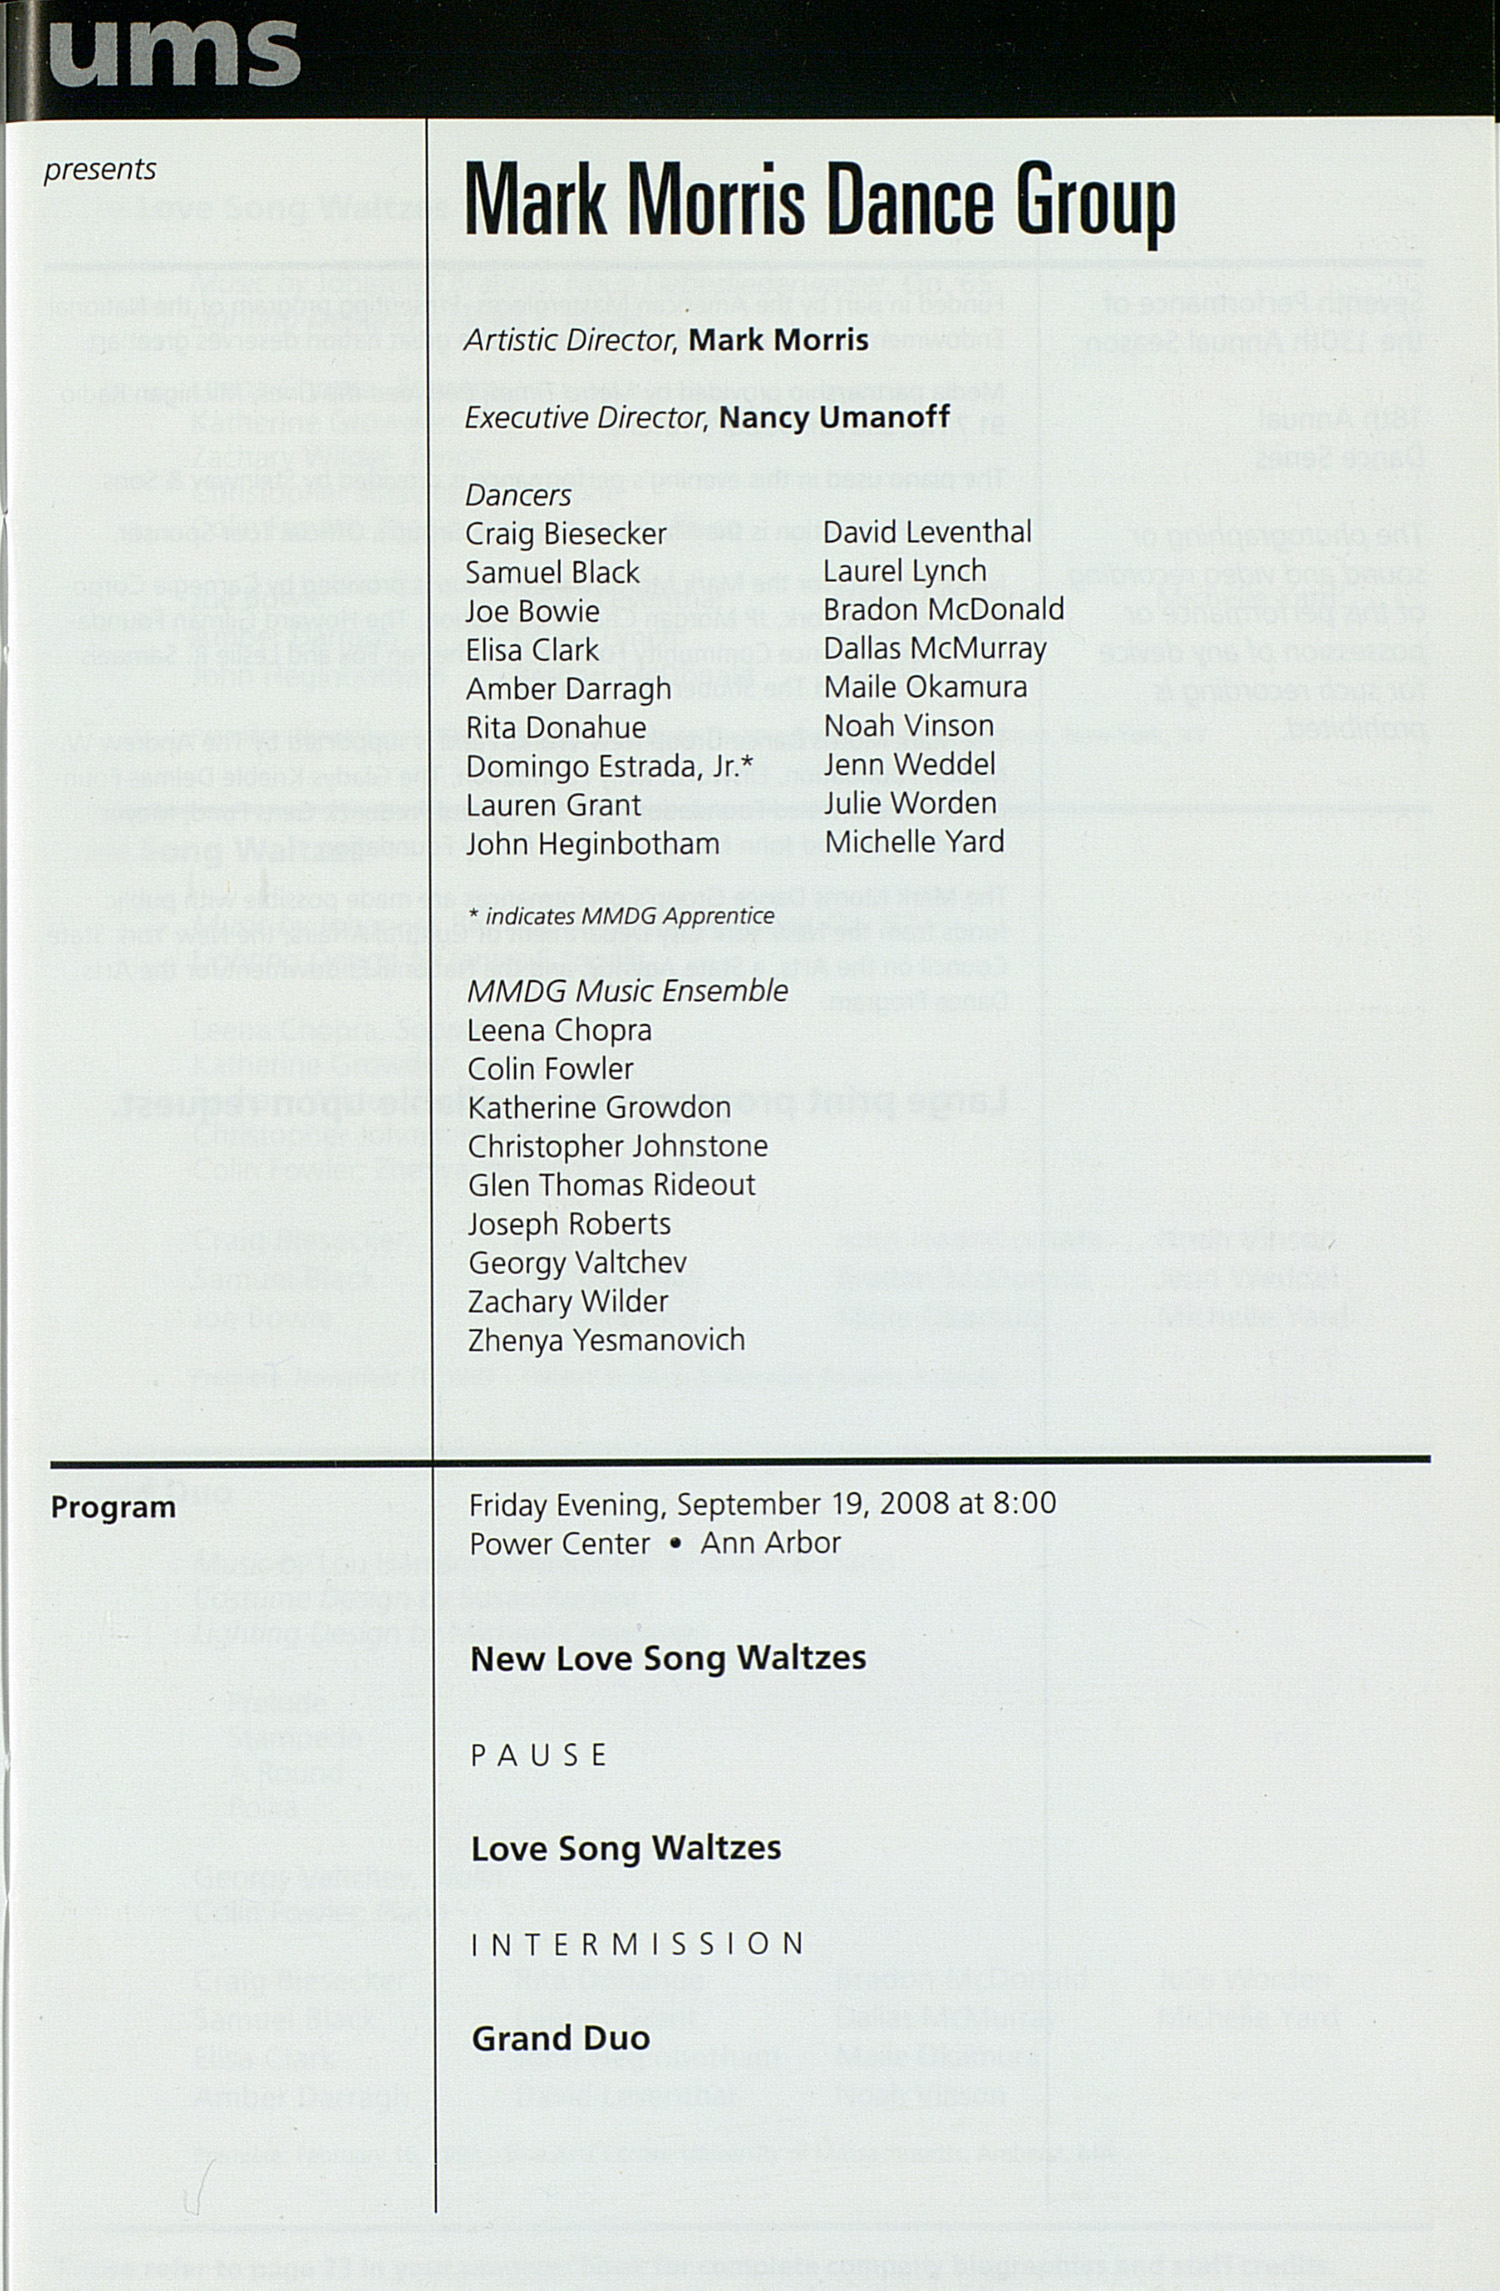 UMS Concert Program, Wednesday Sep. 10 To 27: University Musical Society: Fall 2008 - Wednesday Sep. 10 To 27 --  image